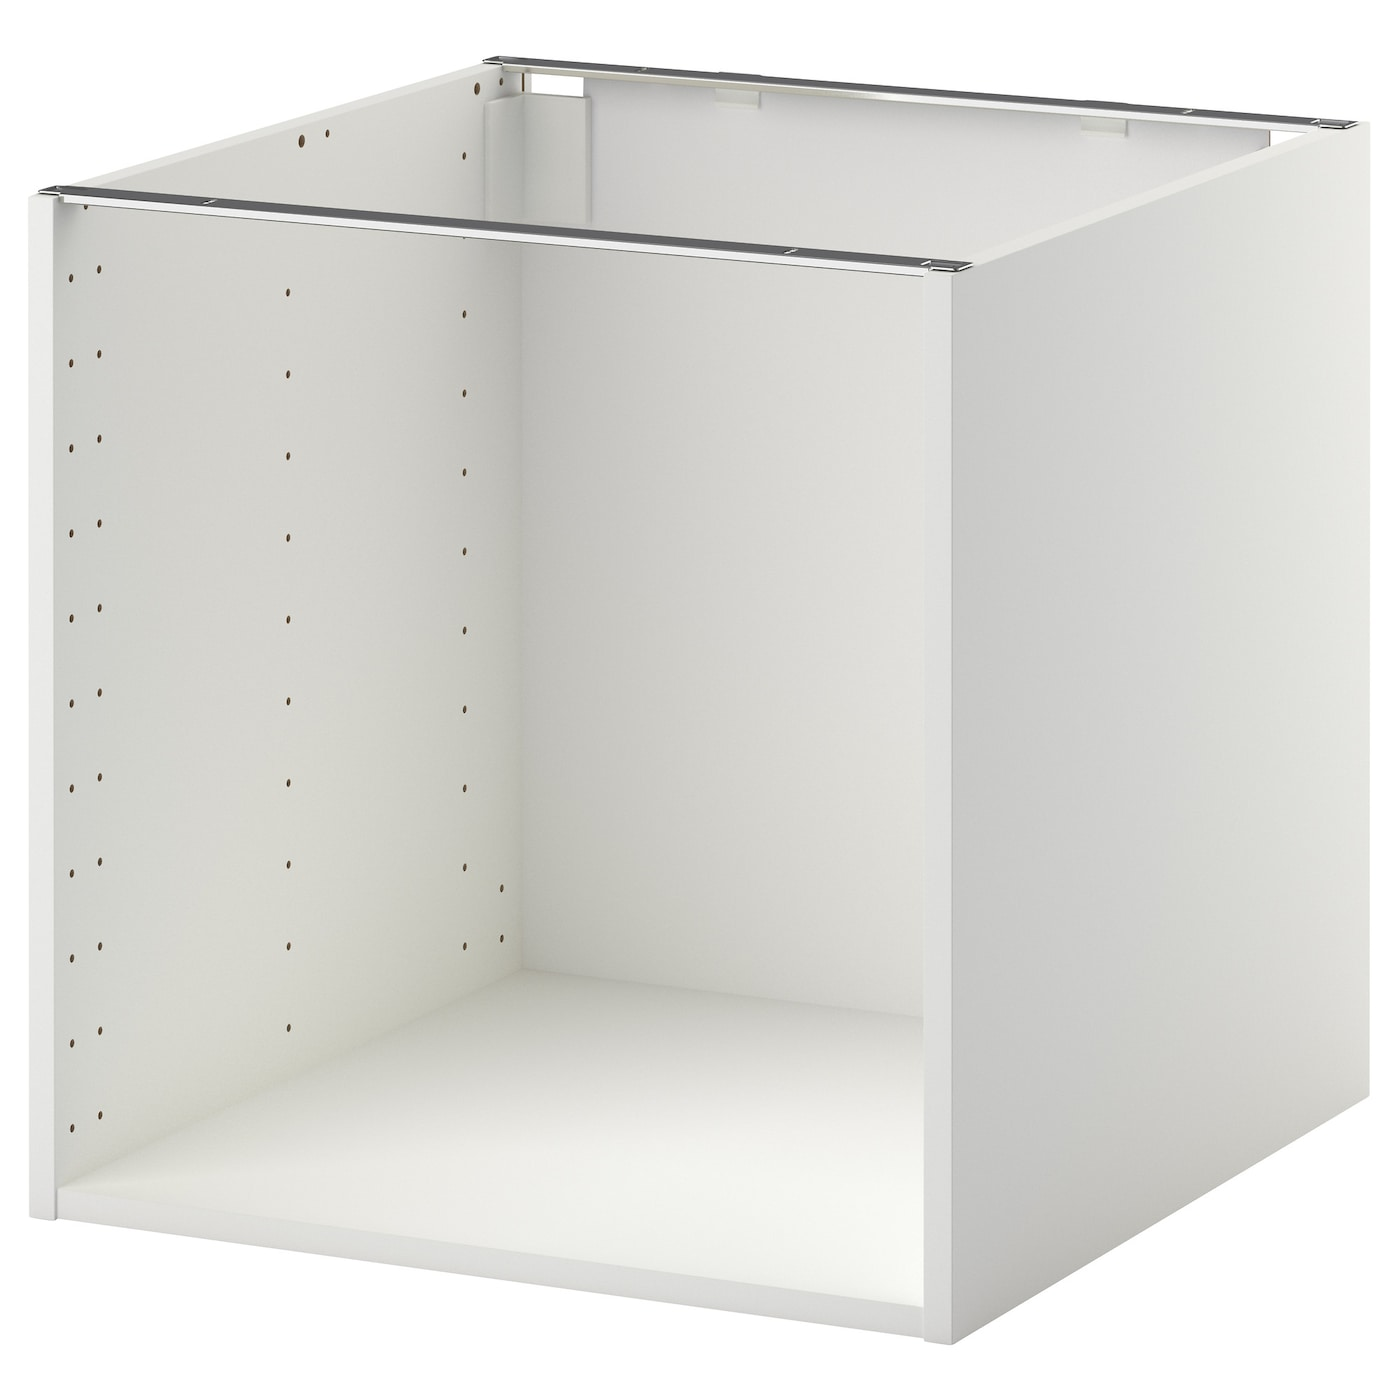 ikea kitchen cabinet construction metod base cabinet frame white 60x60x60 cm ikea 17614